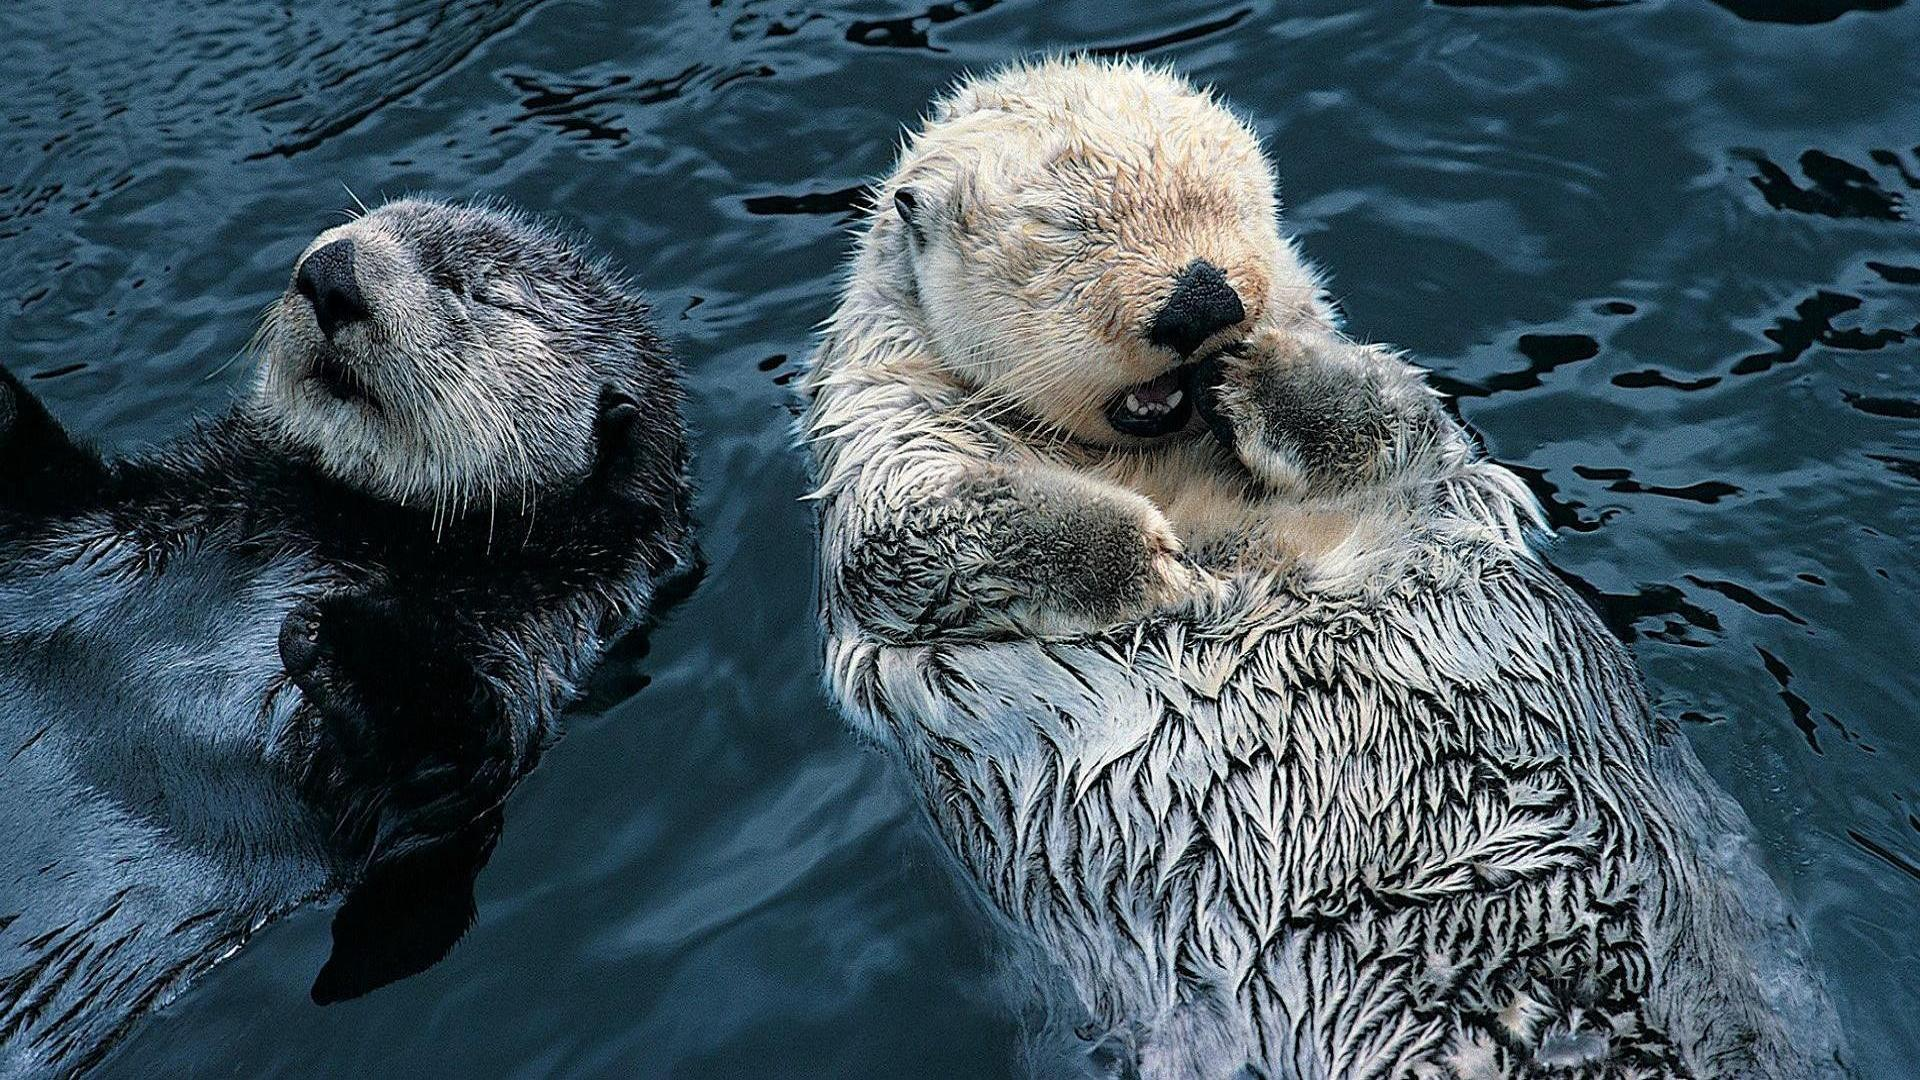 Cute Sea Otter Wallpaper - Viewing Gallery